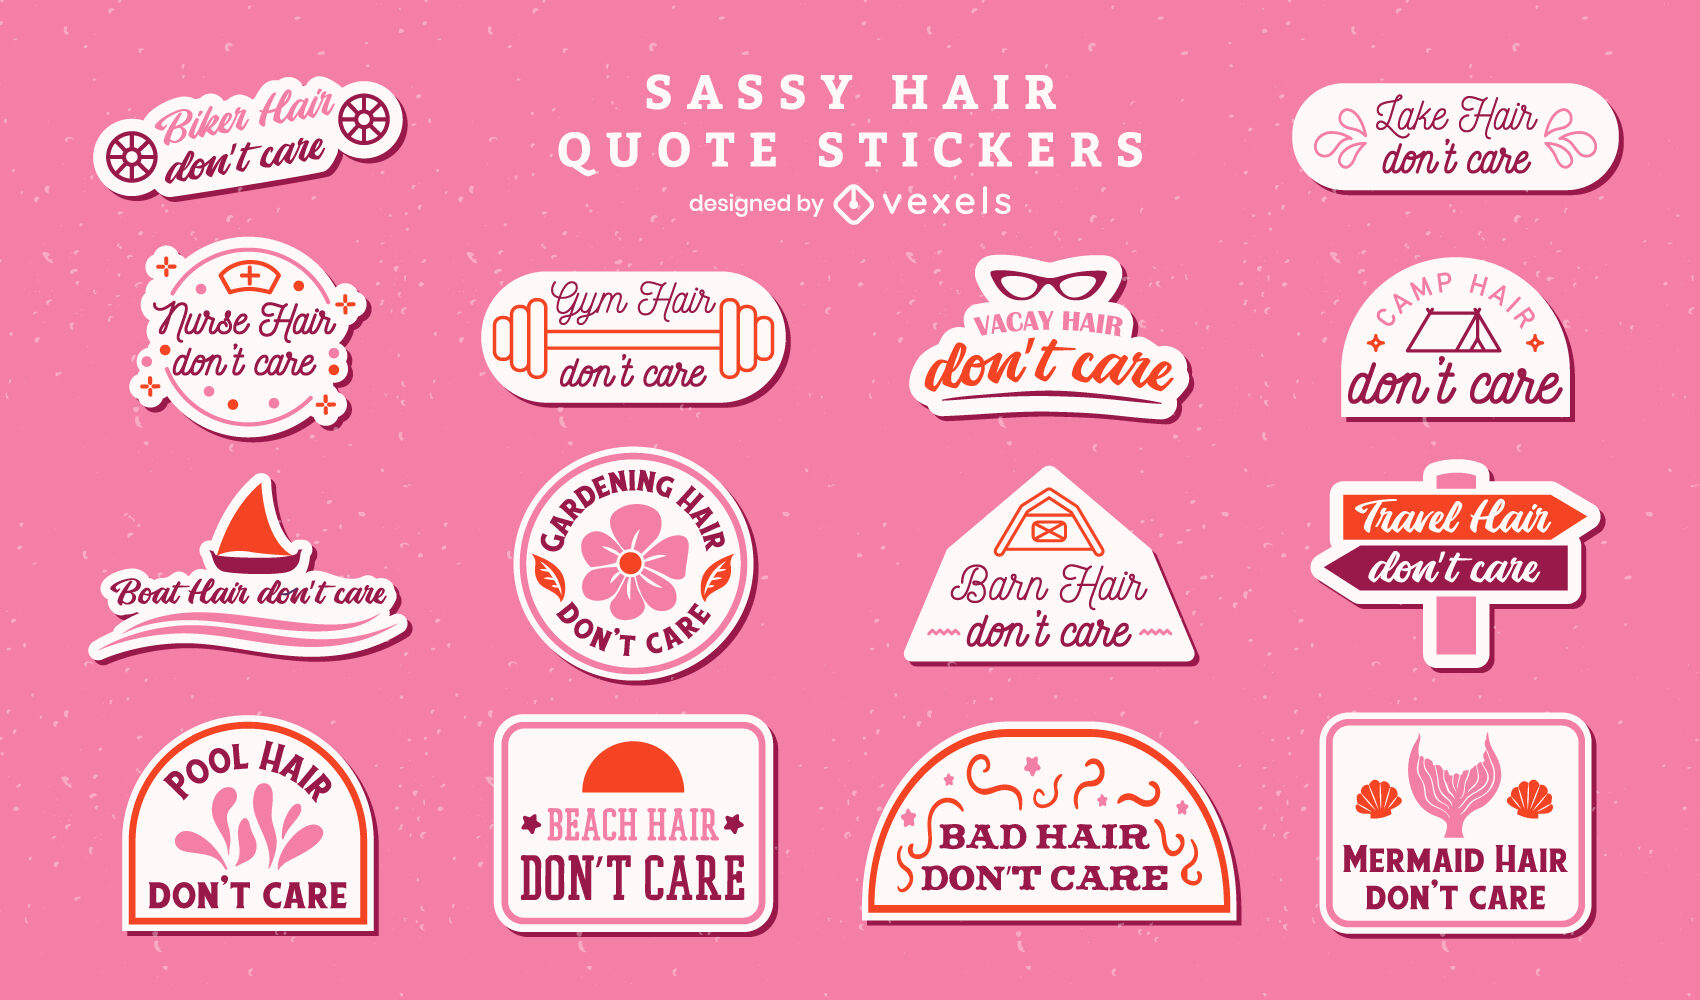 Sassy hair quotes stickers set